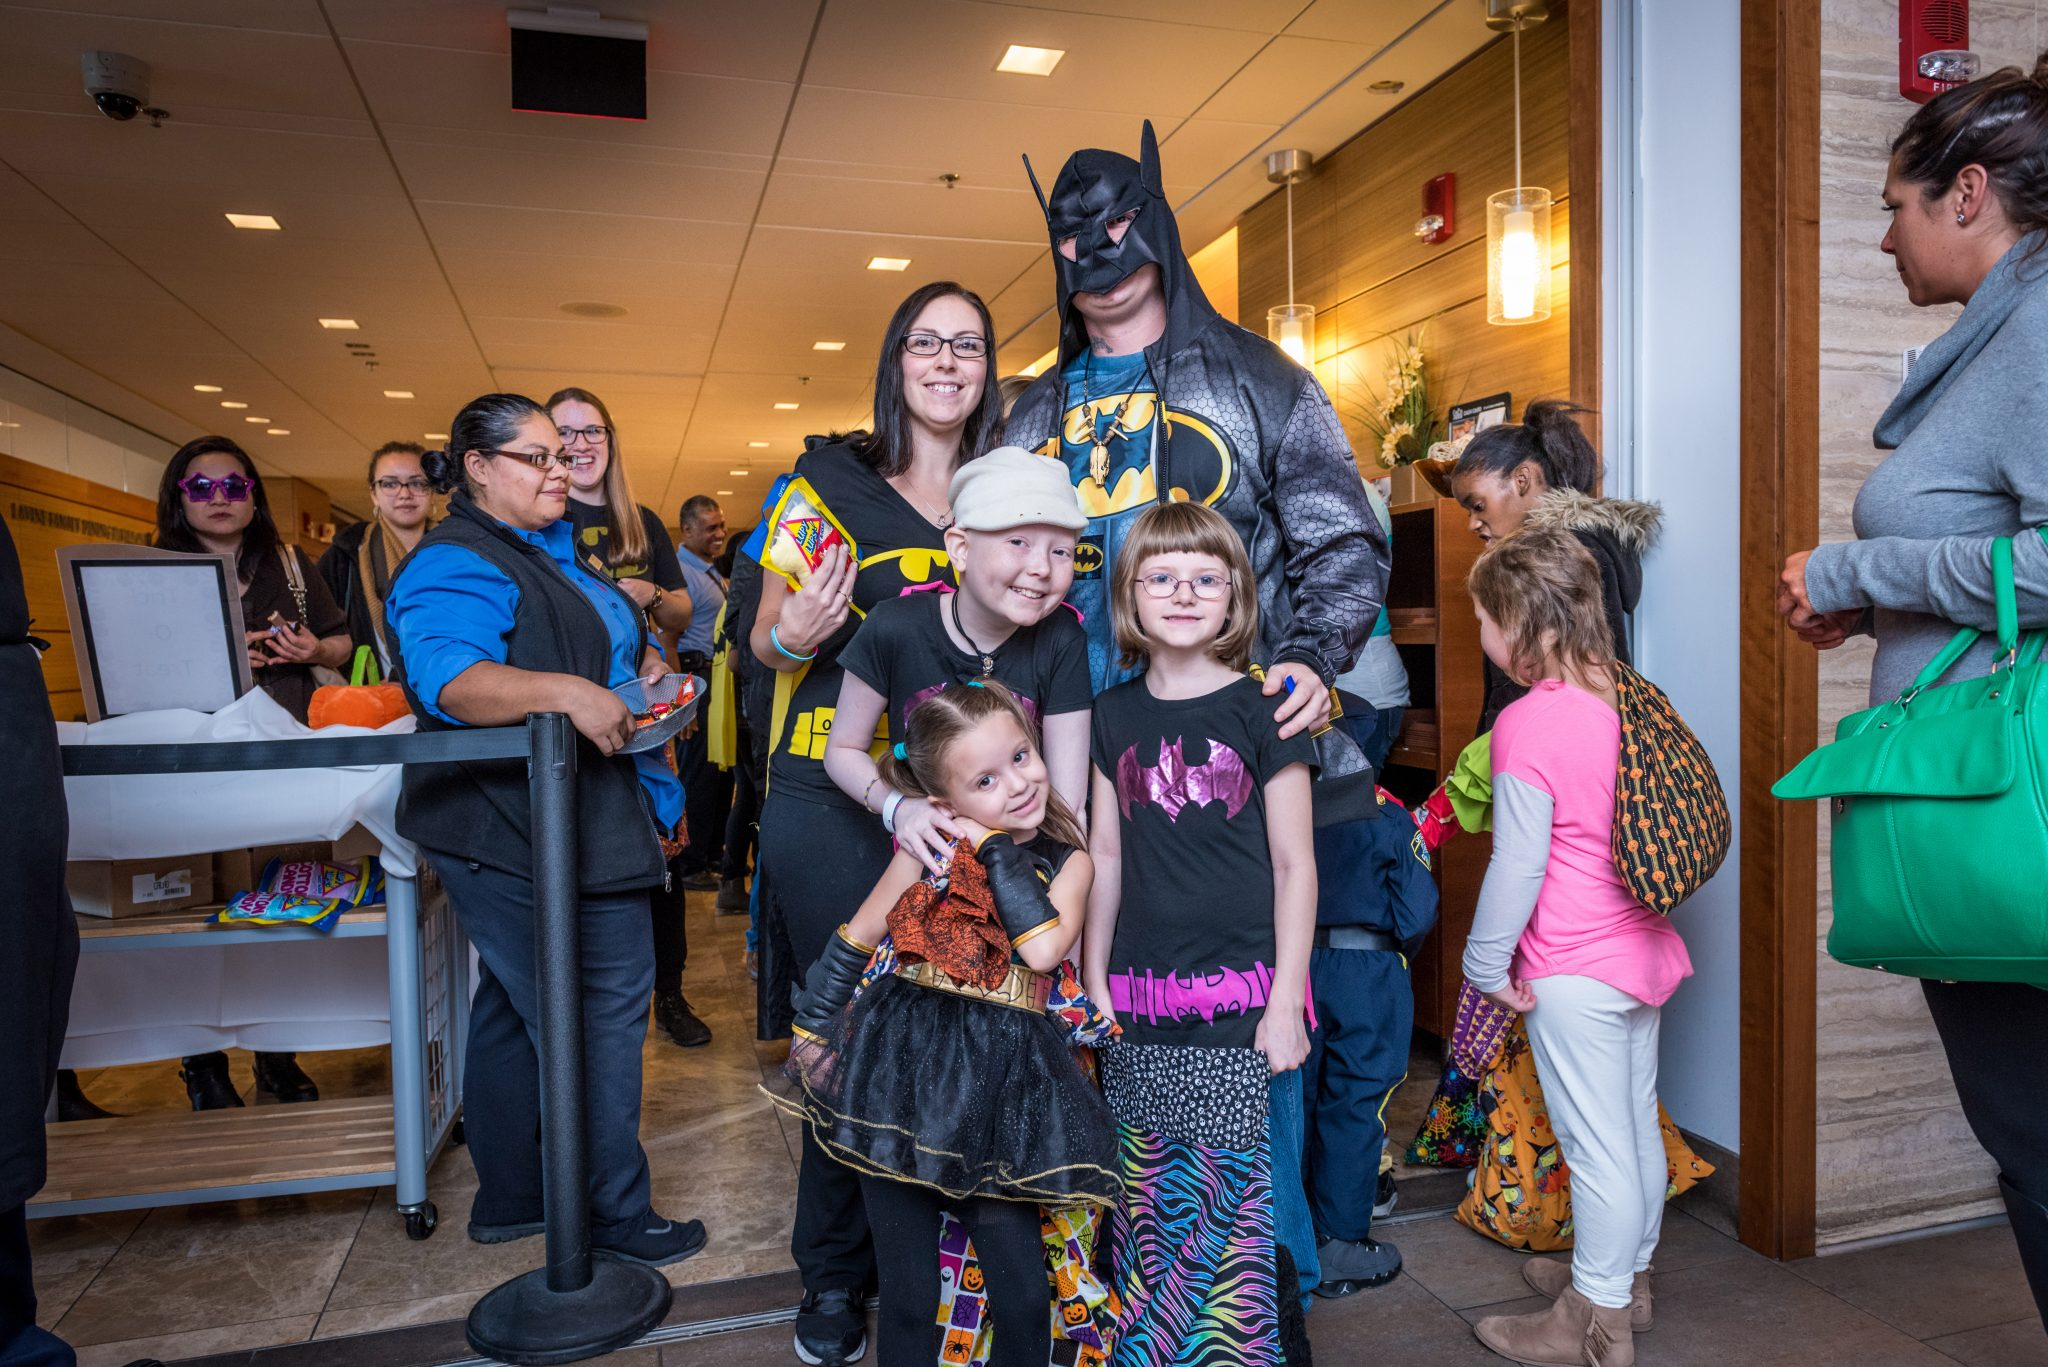 Jimmy Fund Clinic patient Aurora, age 10, trick-or-treats with her Bat-family.